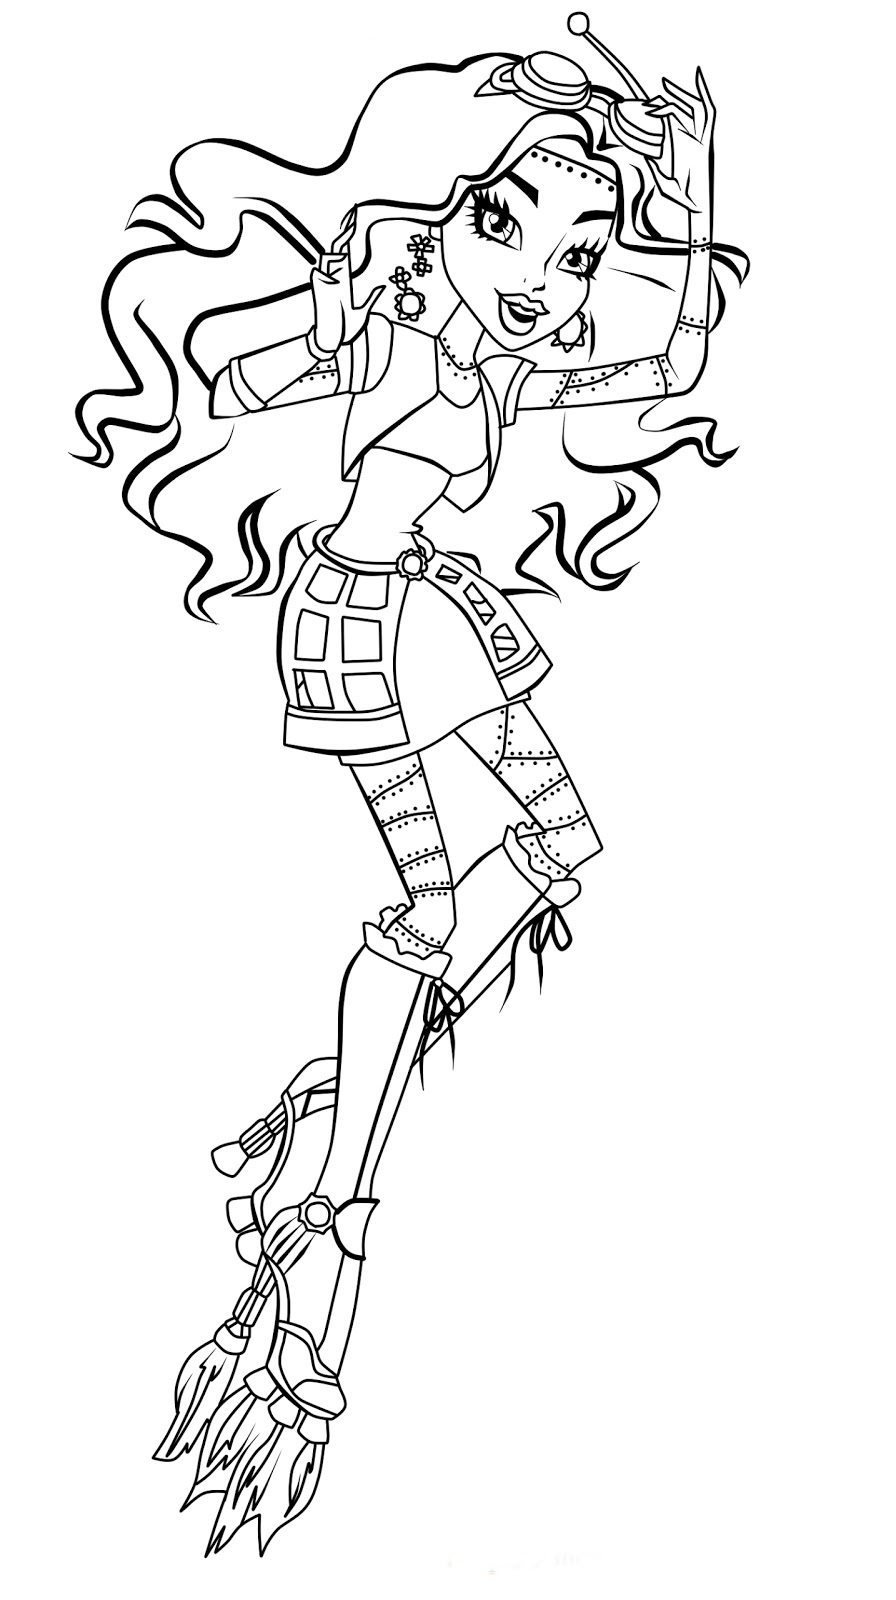 monster high colouring sheet coloring pages monster high coloring pages free and printable colouring monster sheet high